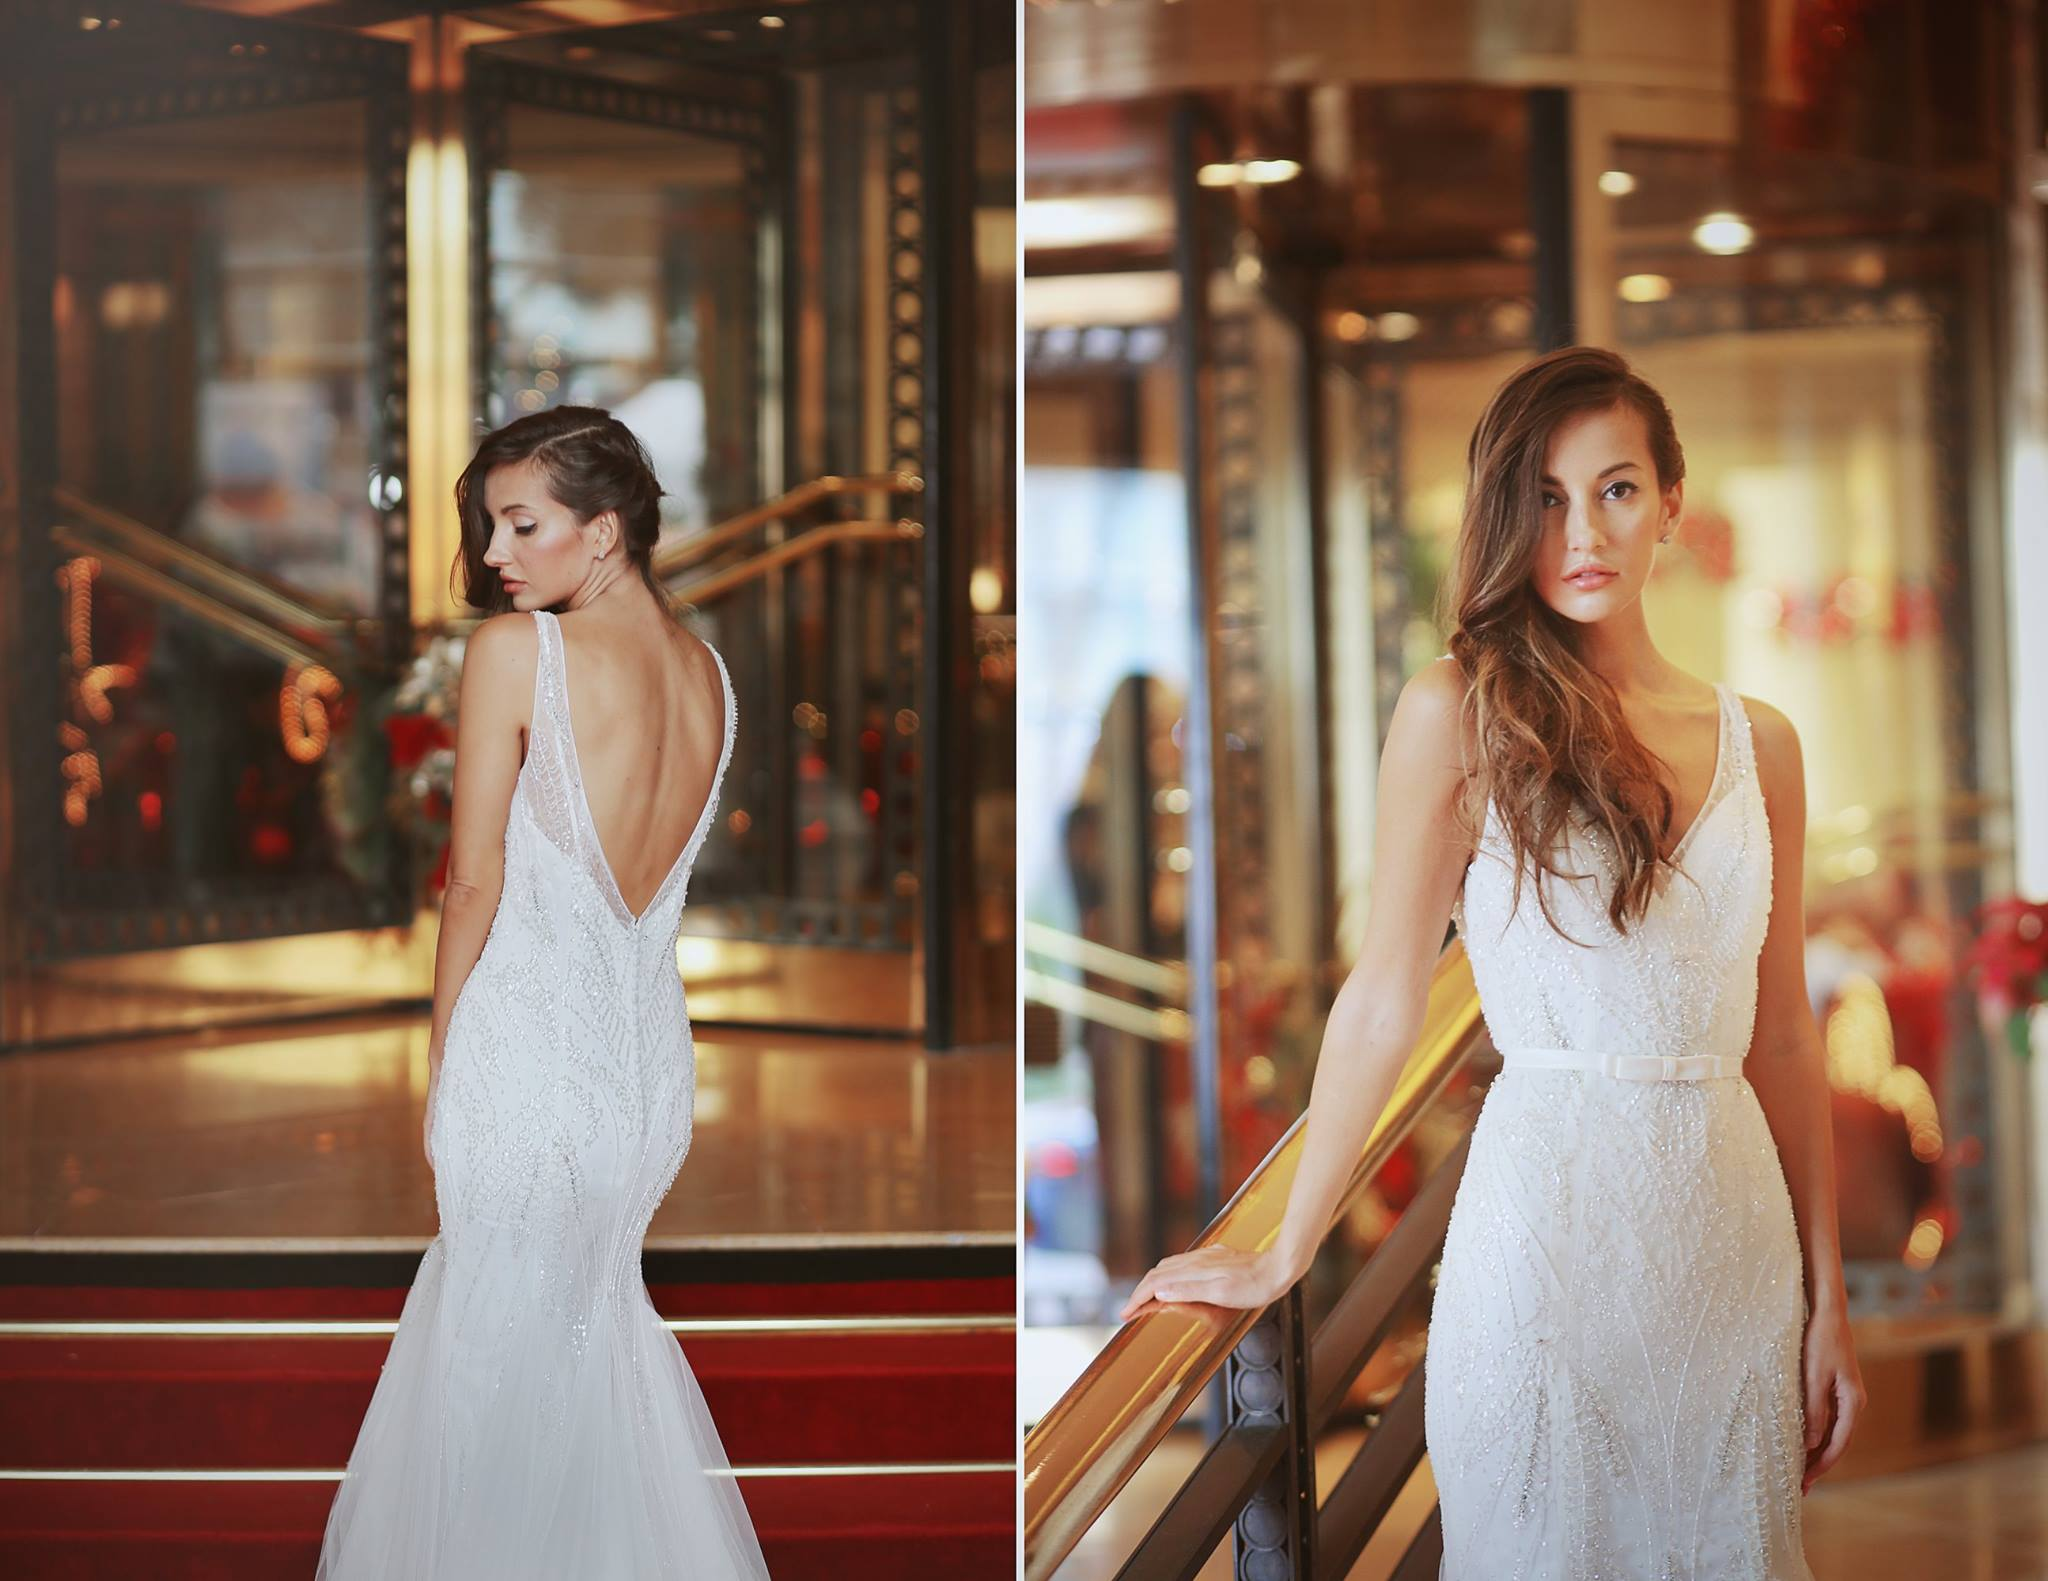 25 Top Bridal Boutiques In Singapore You Cannot Miss Out